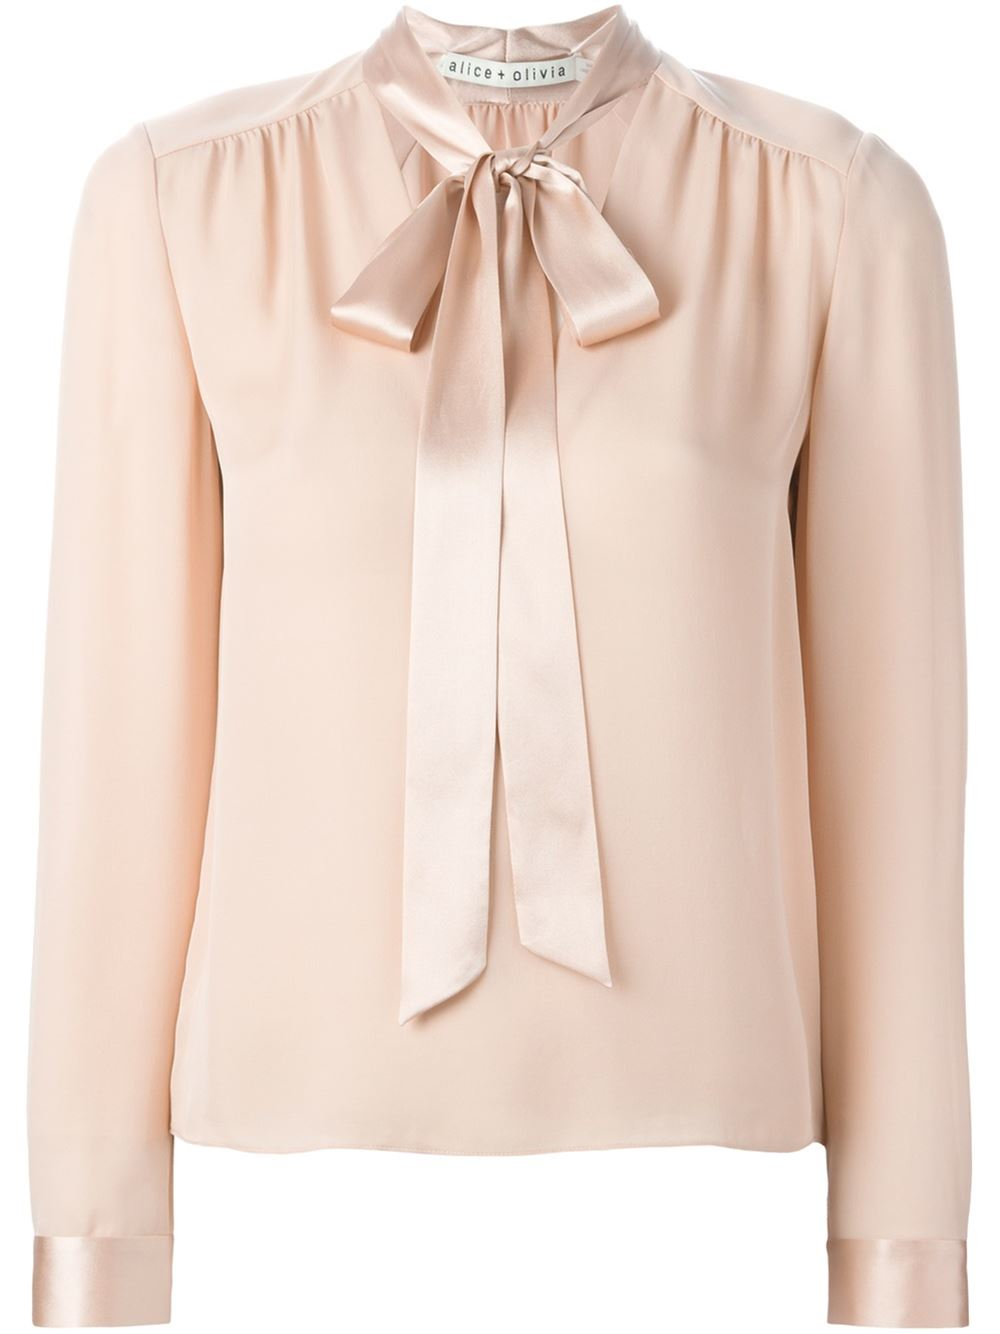 1aa69d389816b0 Alice + Olivia Pussy Bow Blouse in Pink - Lyst